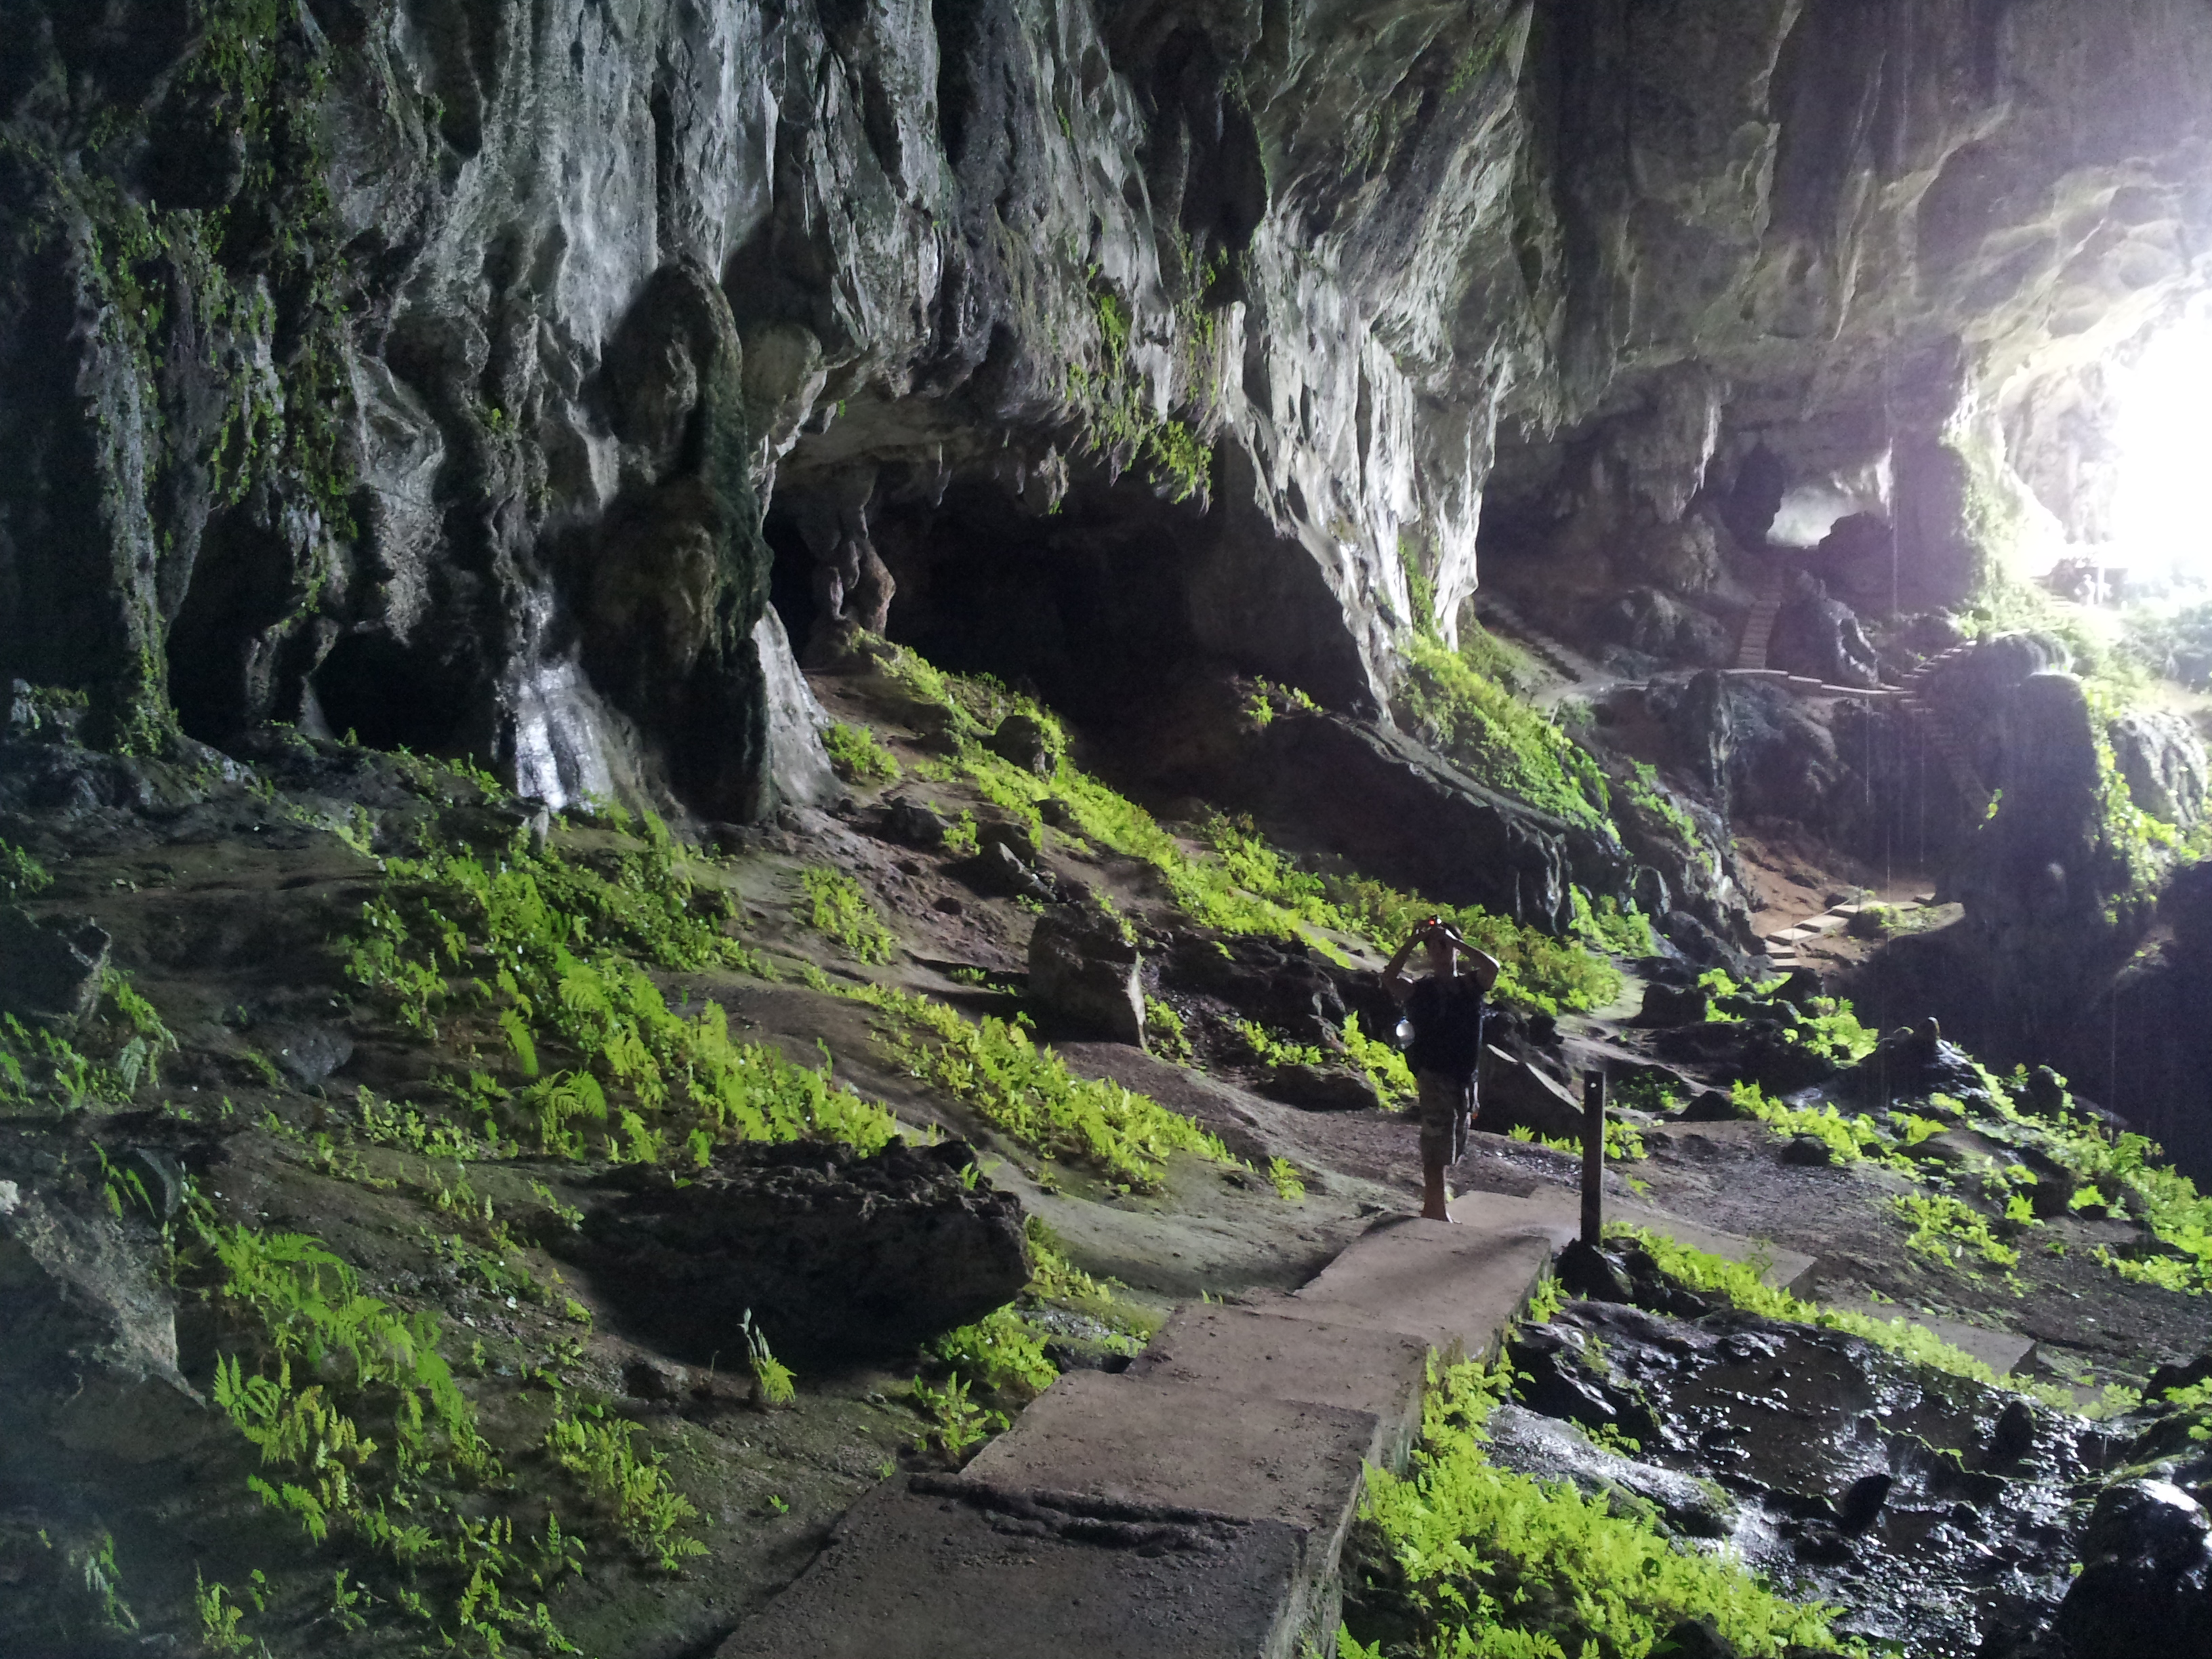 Kuching Malaysia  City new picture : Kuching, Malaysia – Caves and More Misadventures | an adventurous ...